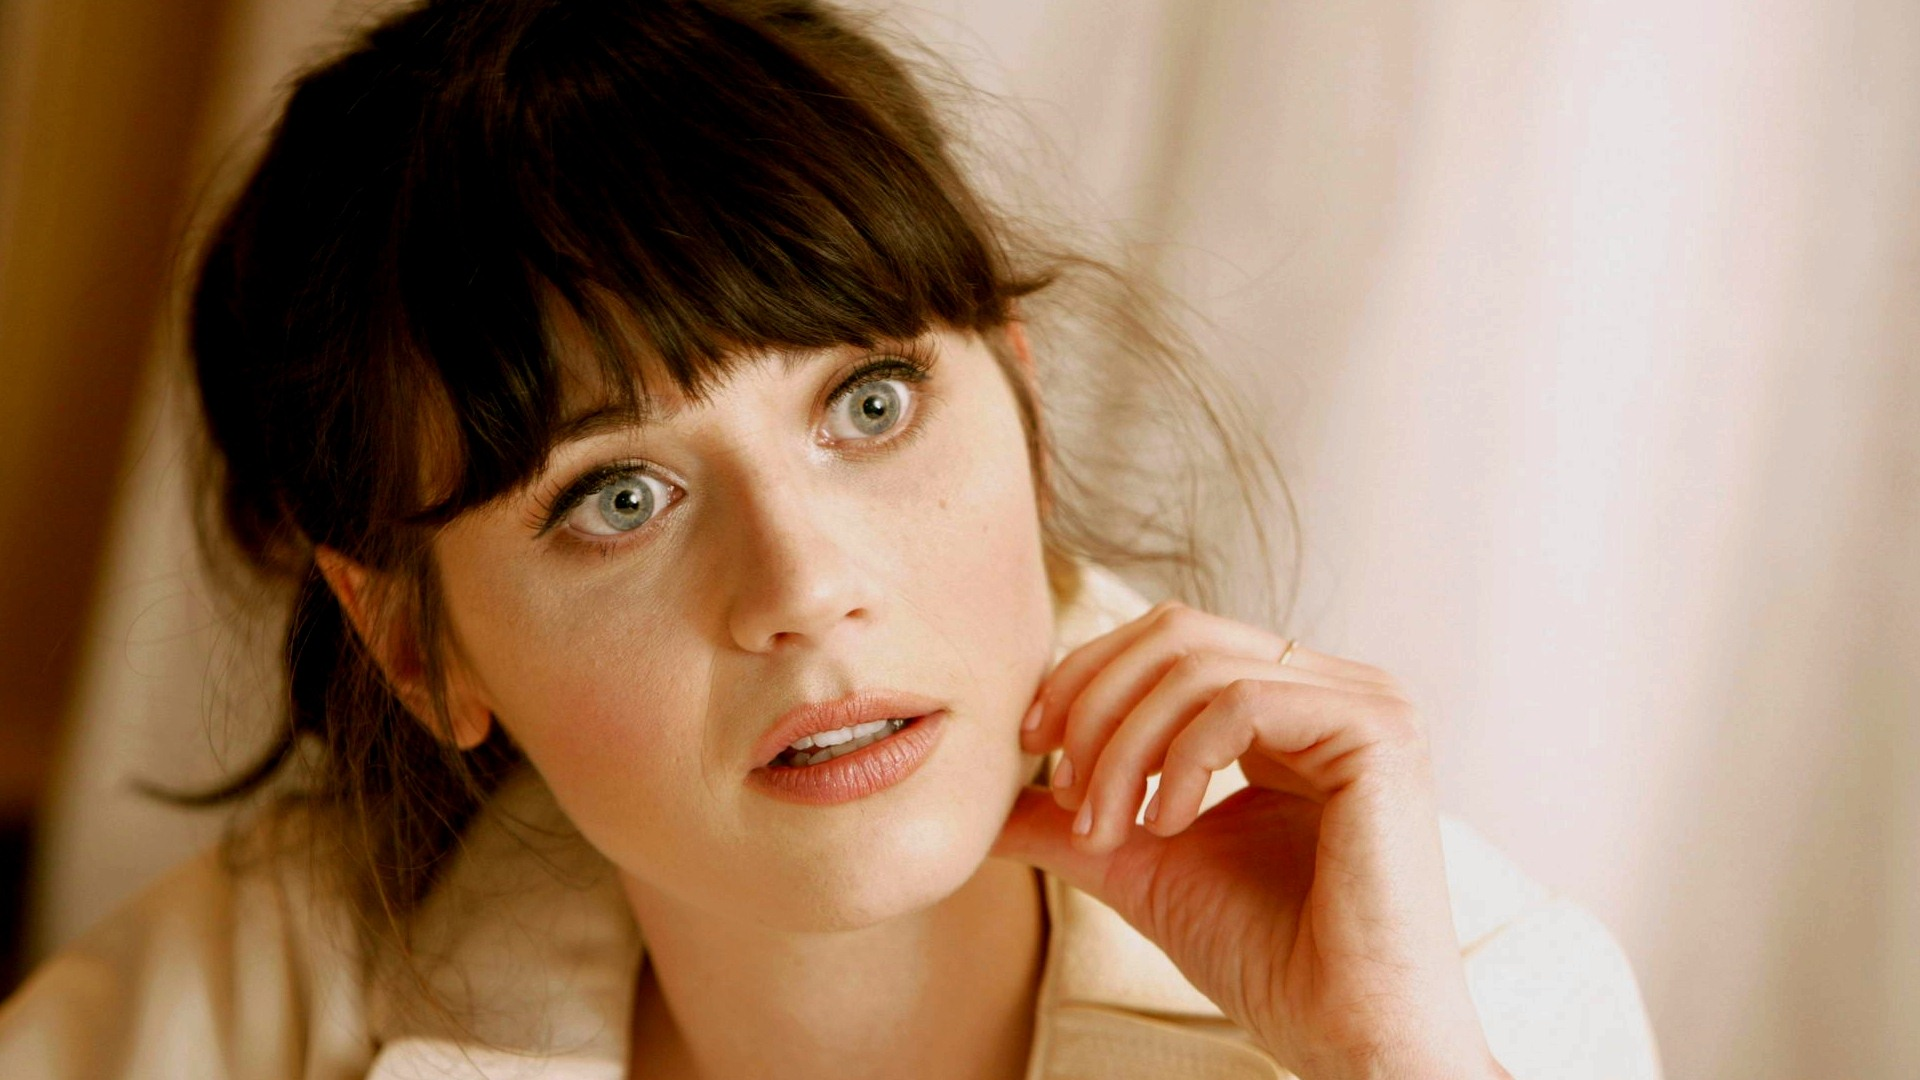 zooey deschanel hot 1920 - photo #19